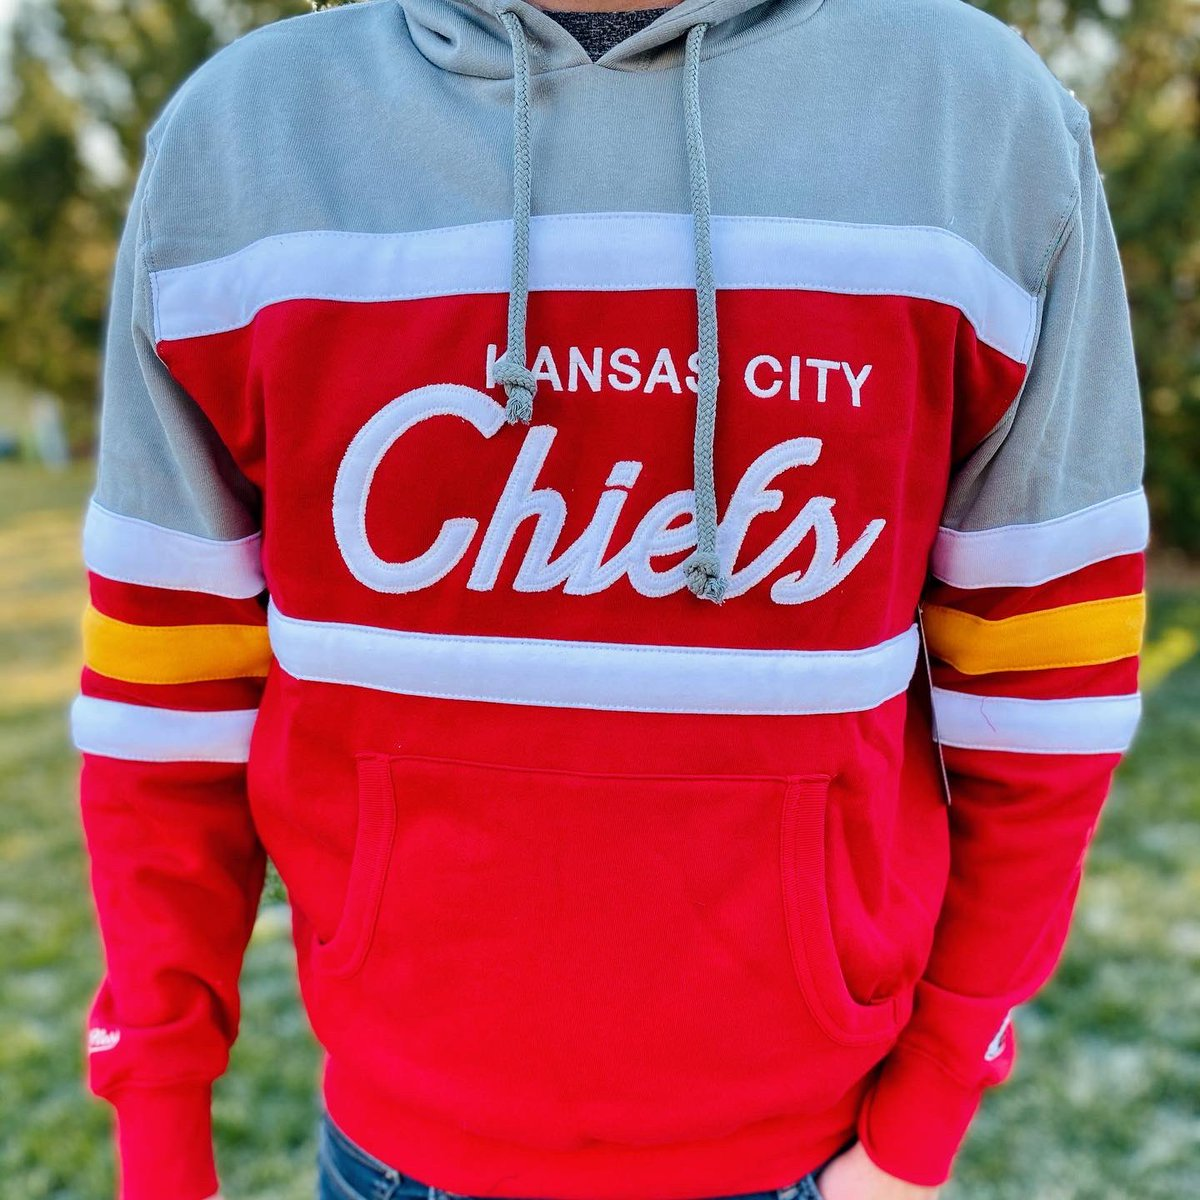 ✨GAME DAY GIVEAWAY✨ The giveaway this week includes: - The women's windbreaker OR color block crew - OR The men's color block hoodie OR the sweater - a game day pin  Here's how it works: 1. follow us and like this post 2. Retweet and tag a friend  Announcing the winner Jan. 24